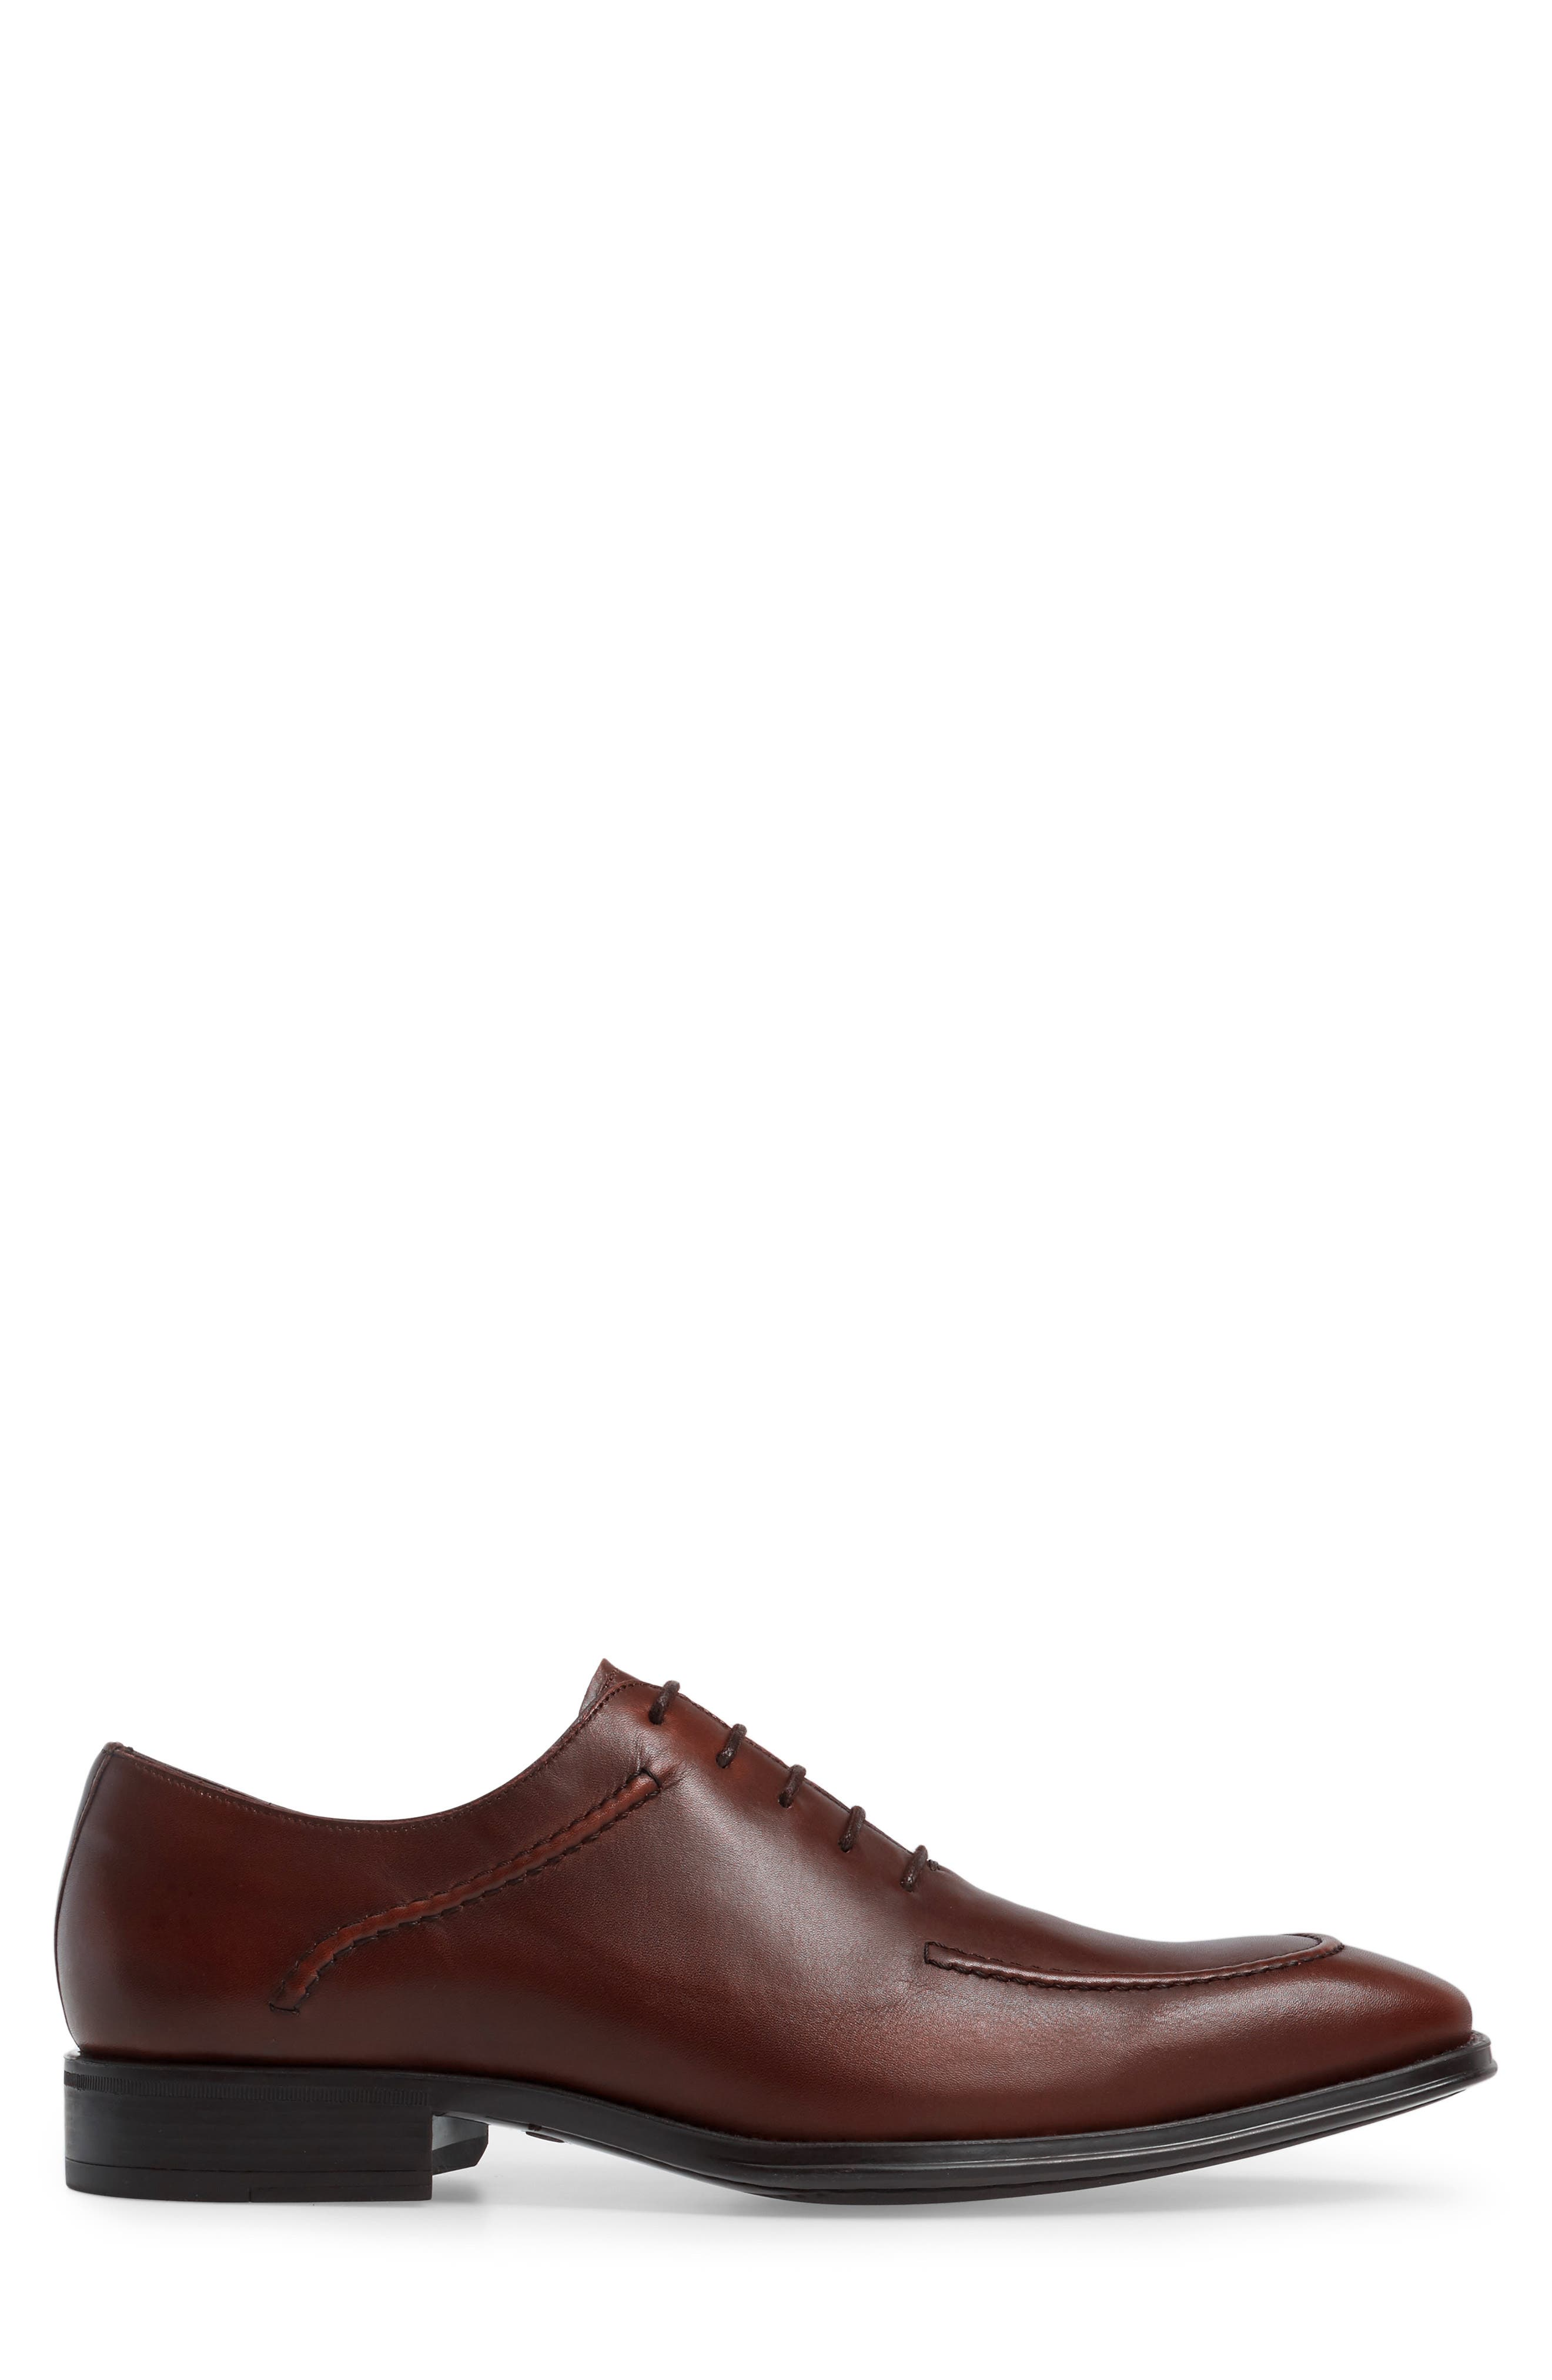 Velez Moc Toe Oxford,                             Alternate thumbnail 3, color,                             Brown Leather